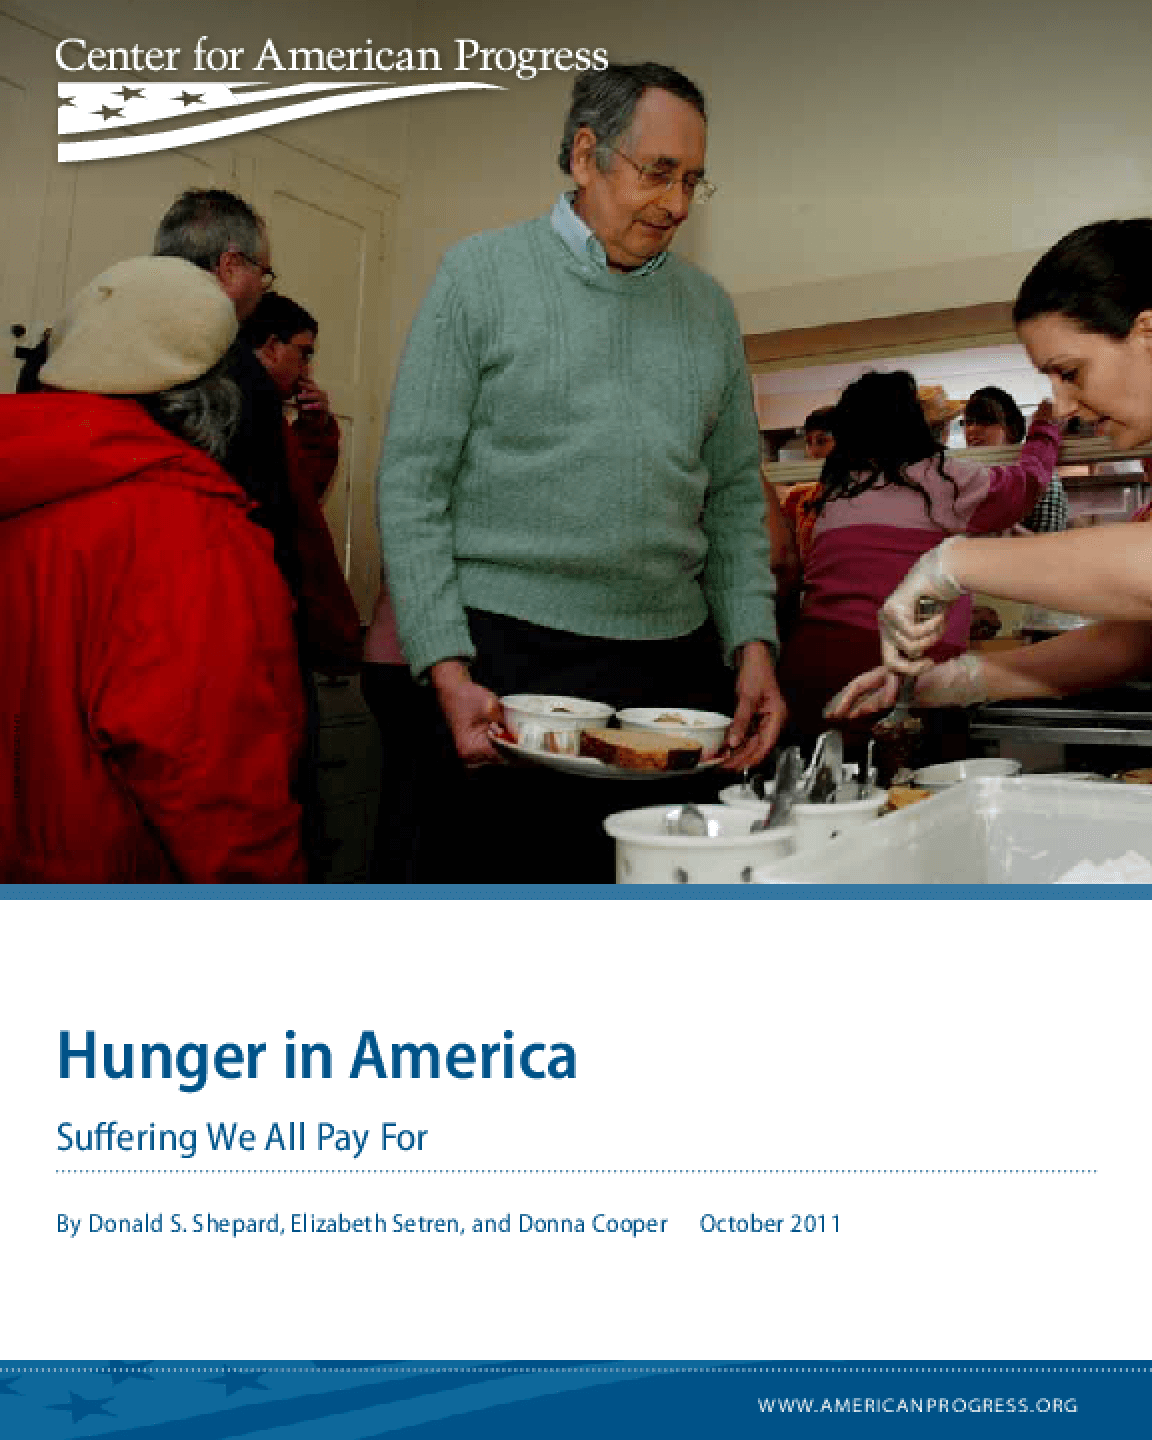 Hunger in America: Suffering We All Pay For